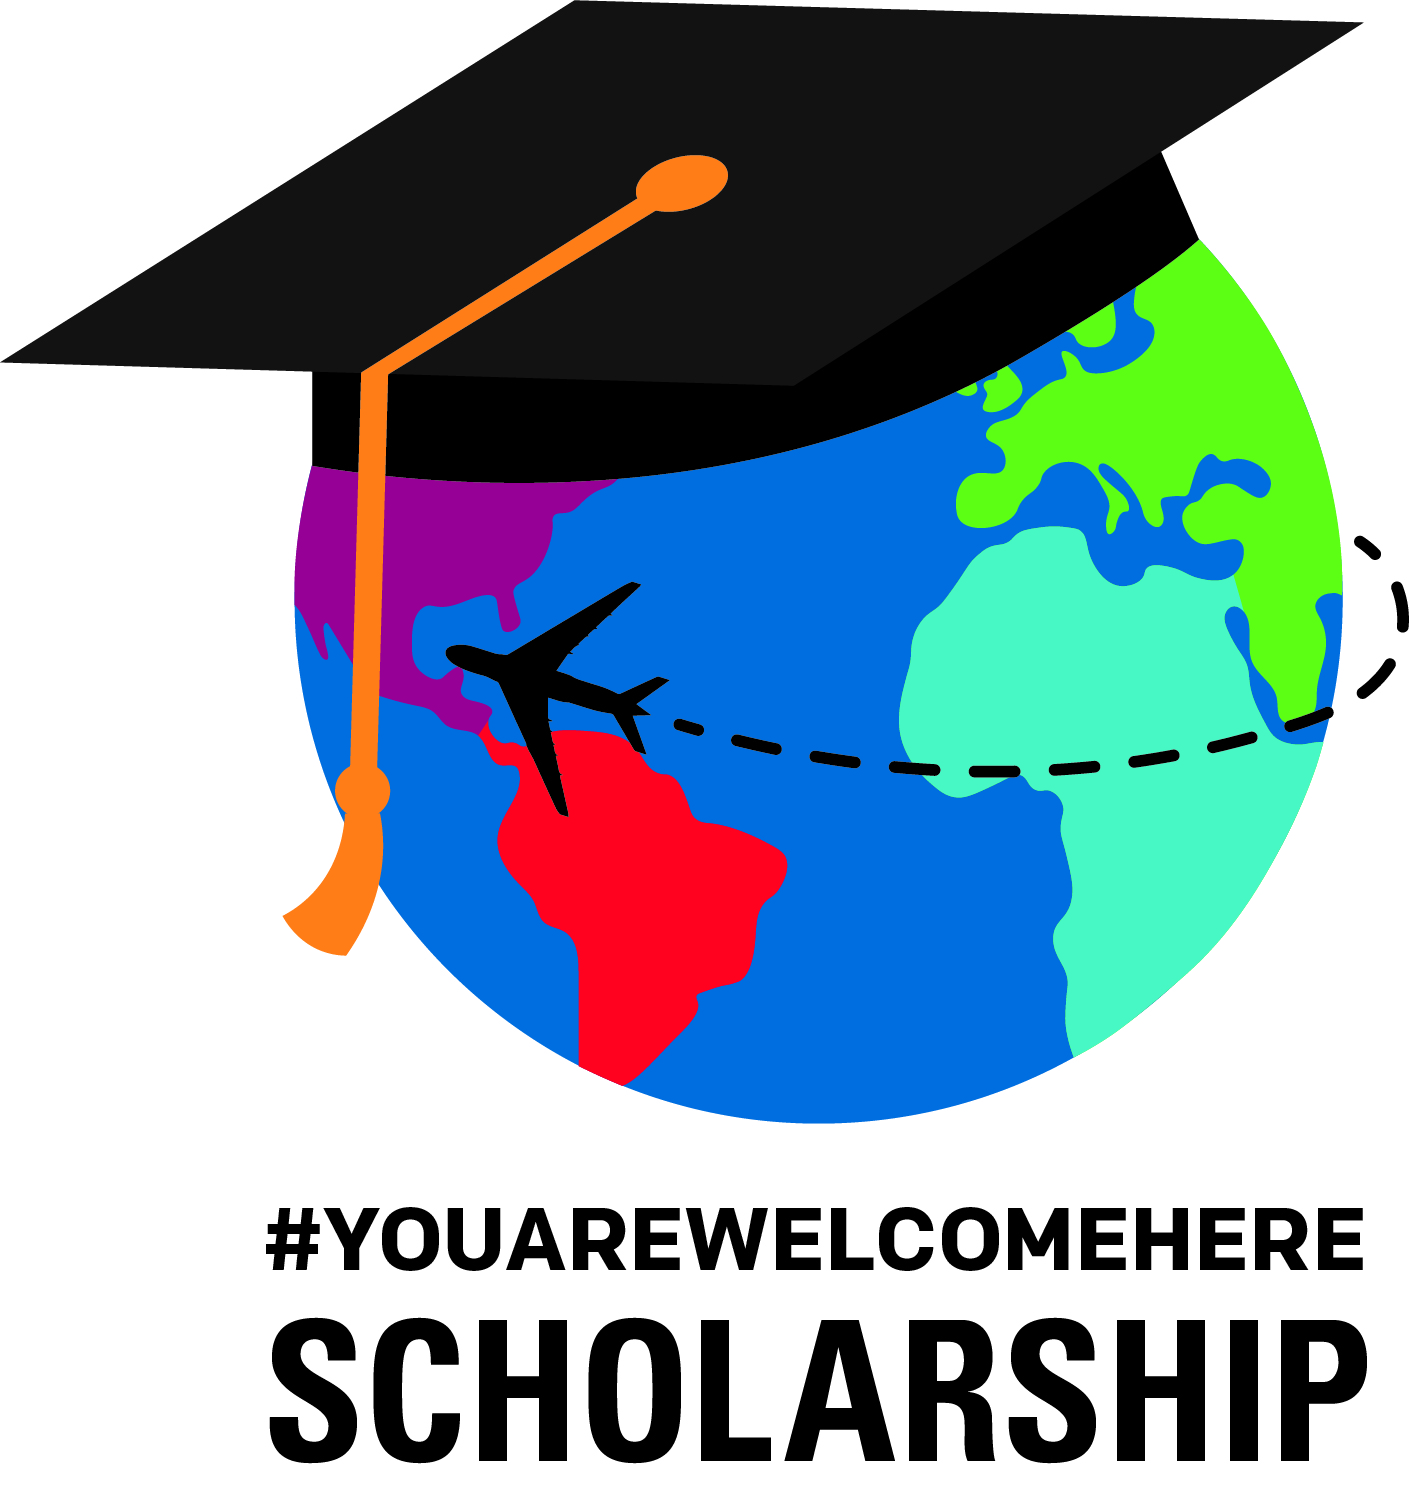 The 2020 scholarship campaign is happening now! - The deadline to register your institution is January 1, 2020.